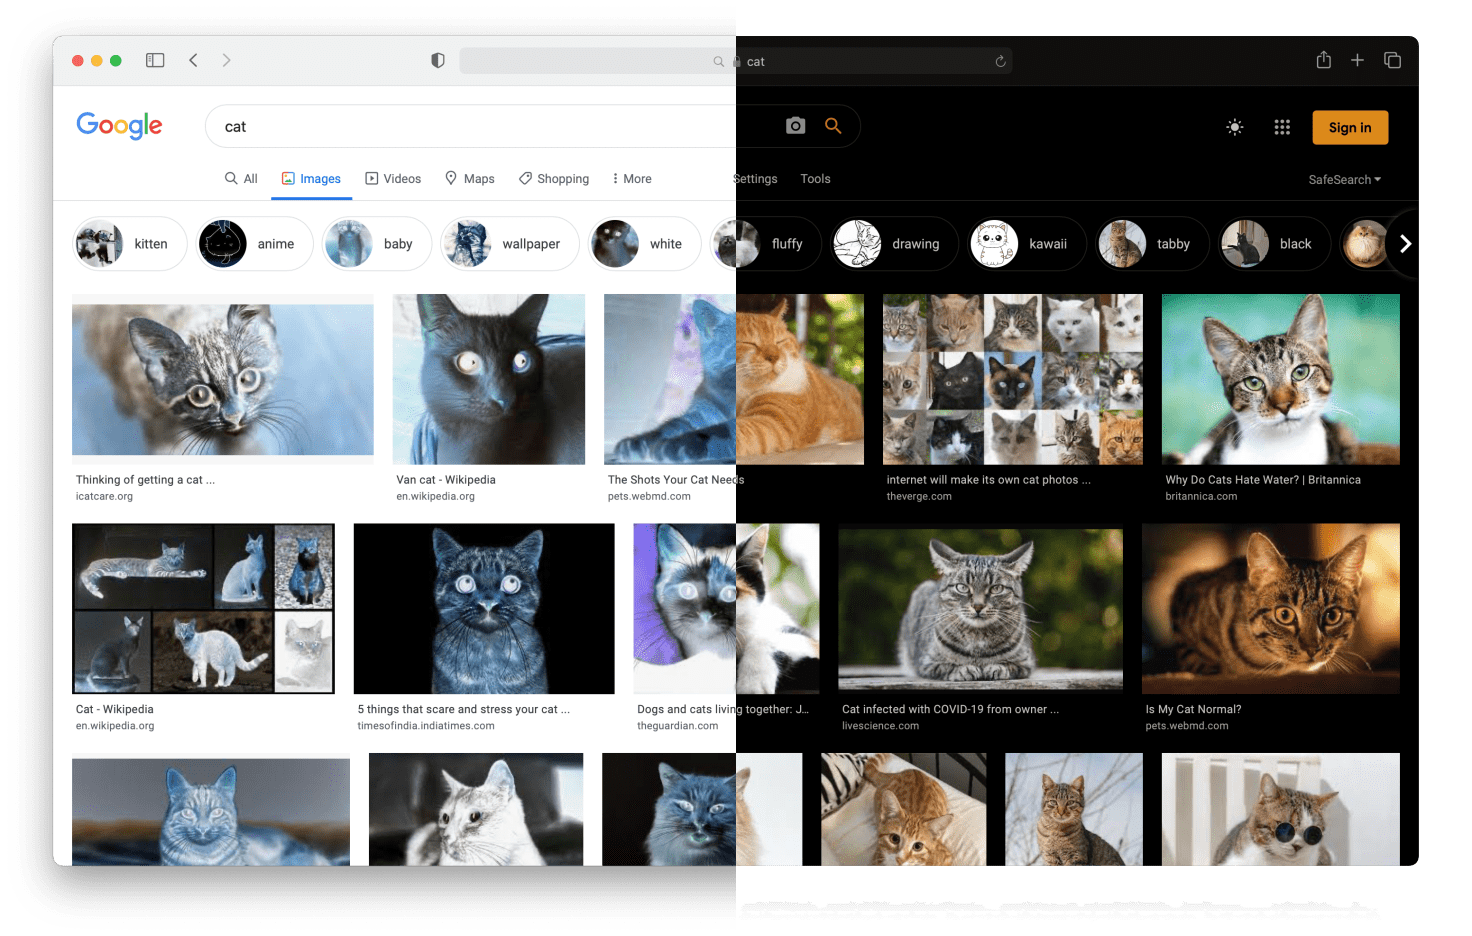 The same screenshot as before, only this time, the colour of the images on the page are inverted. This results in the second half, where all colours are inverted except for the images